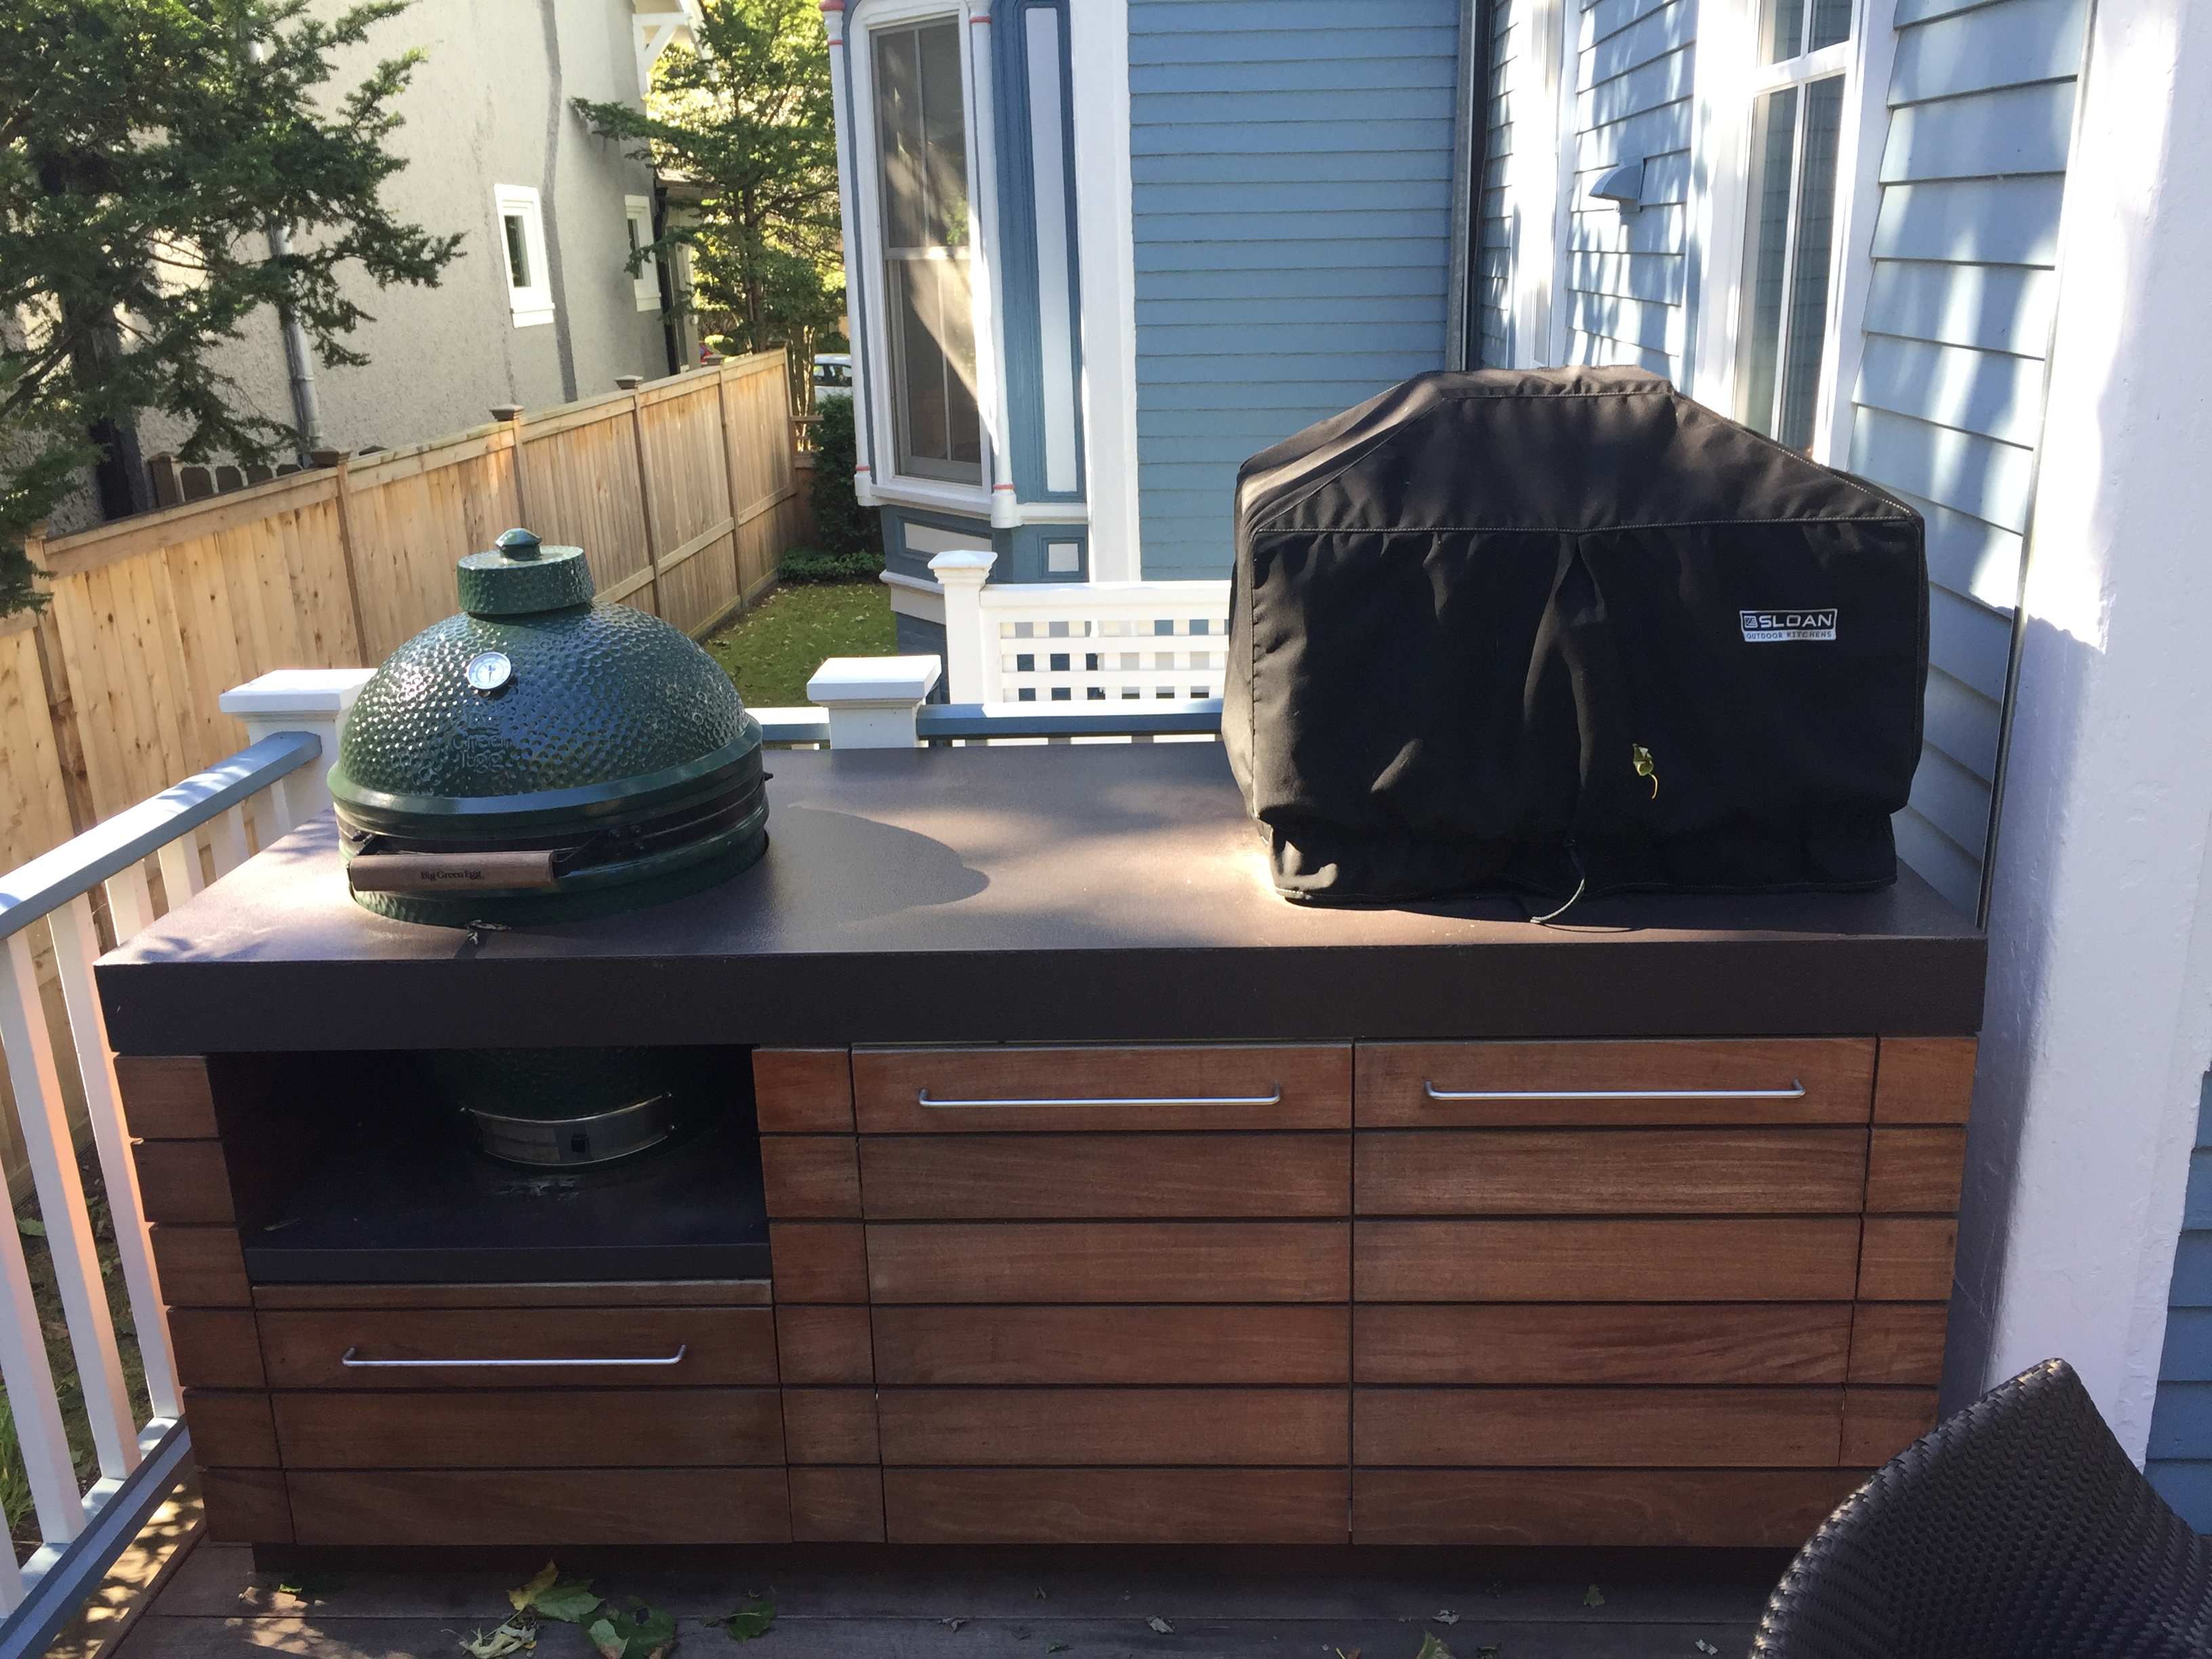 sloan outdoor kitchens stainless steel custom outdoor kitchen cover chicago marine canvas boat covers